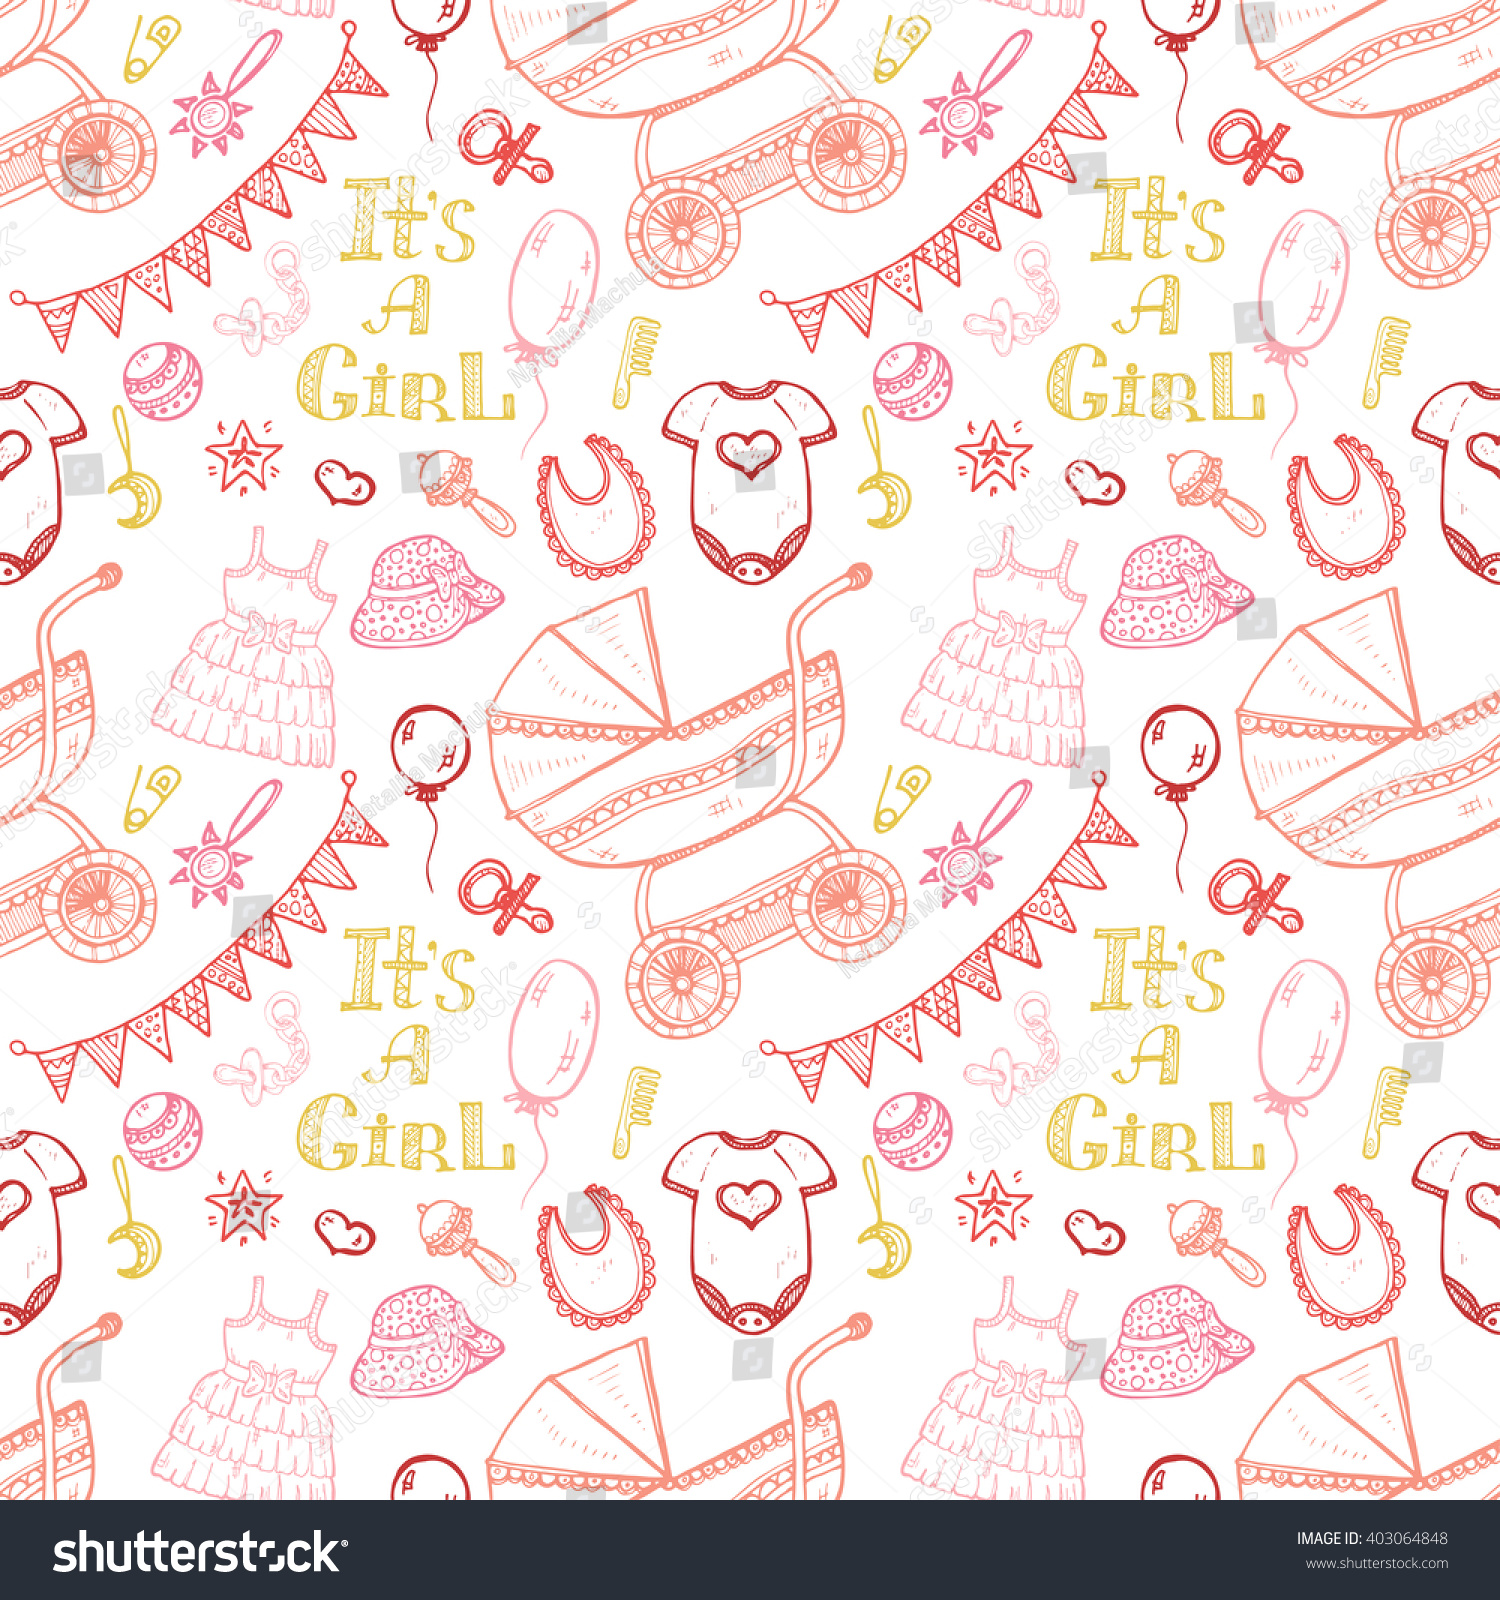 71d989aad Seamless Pattern Cute Hand Drawn Baby Stock Vector (Royalty Free ...